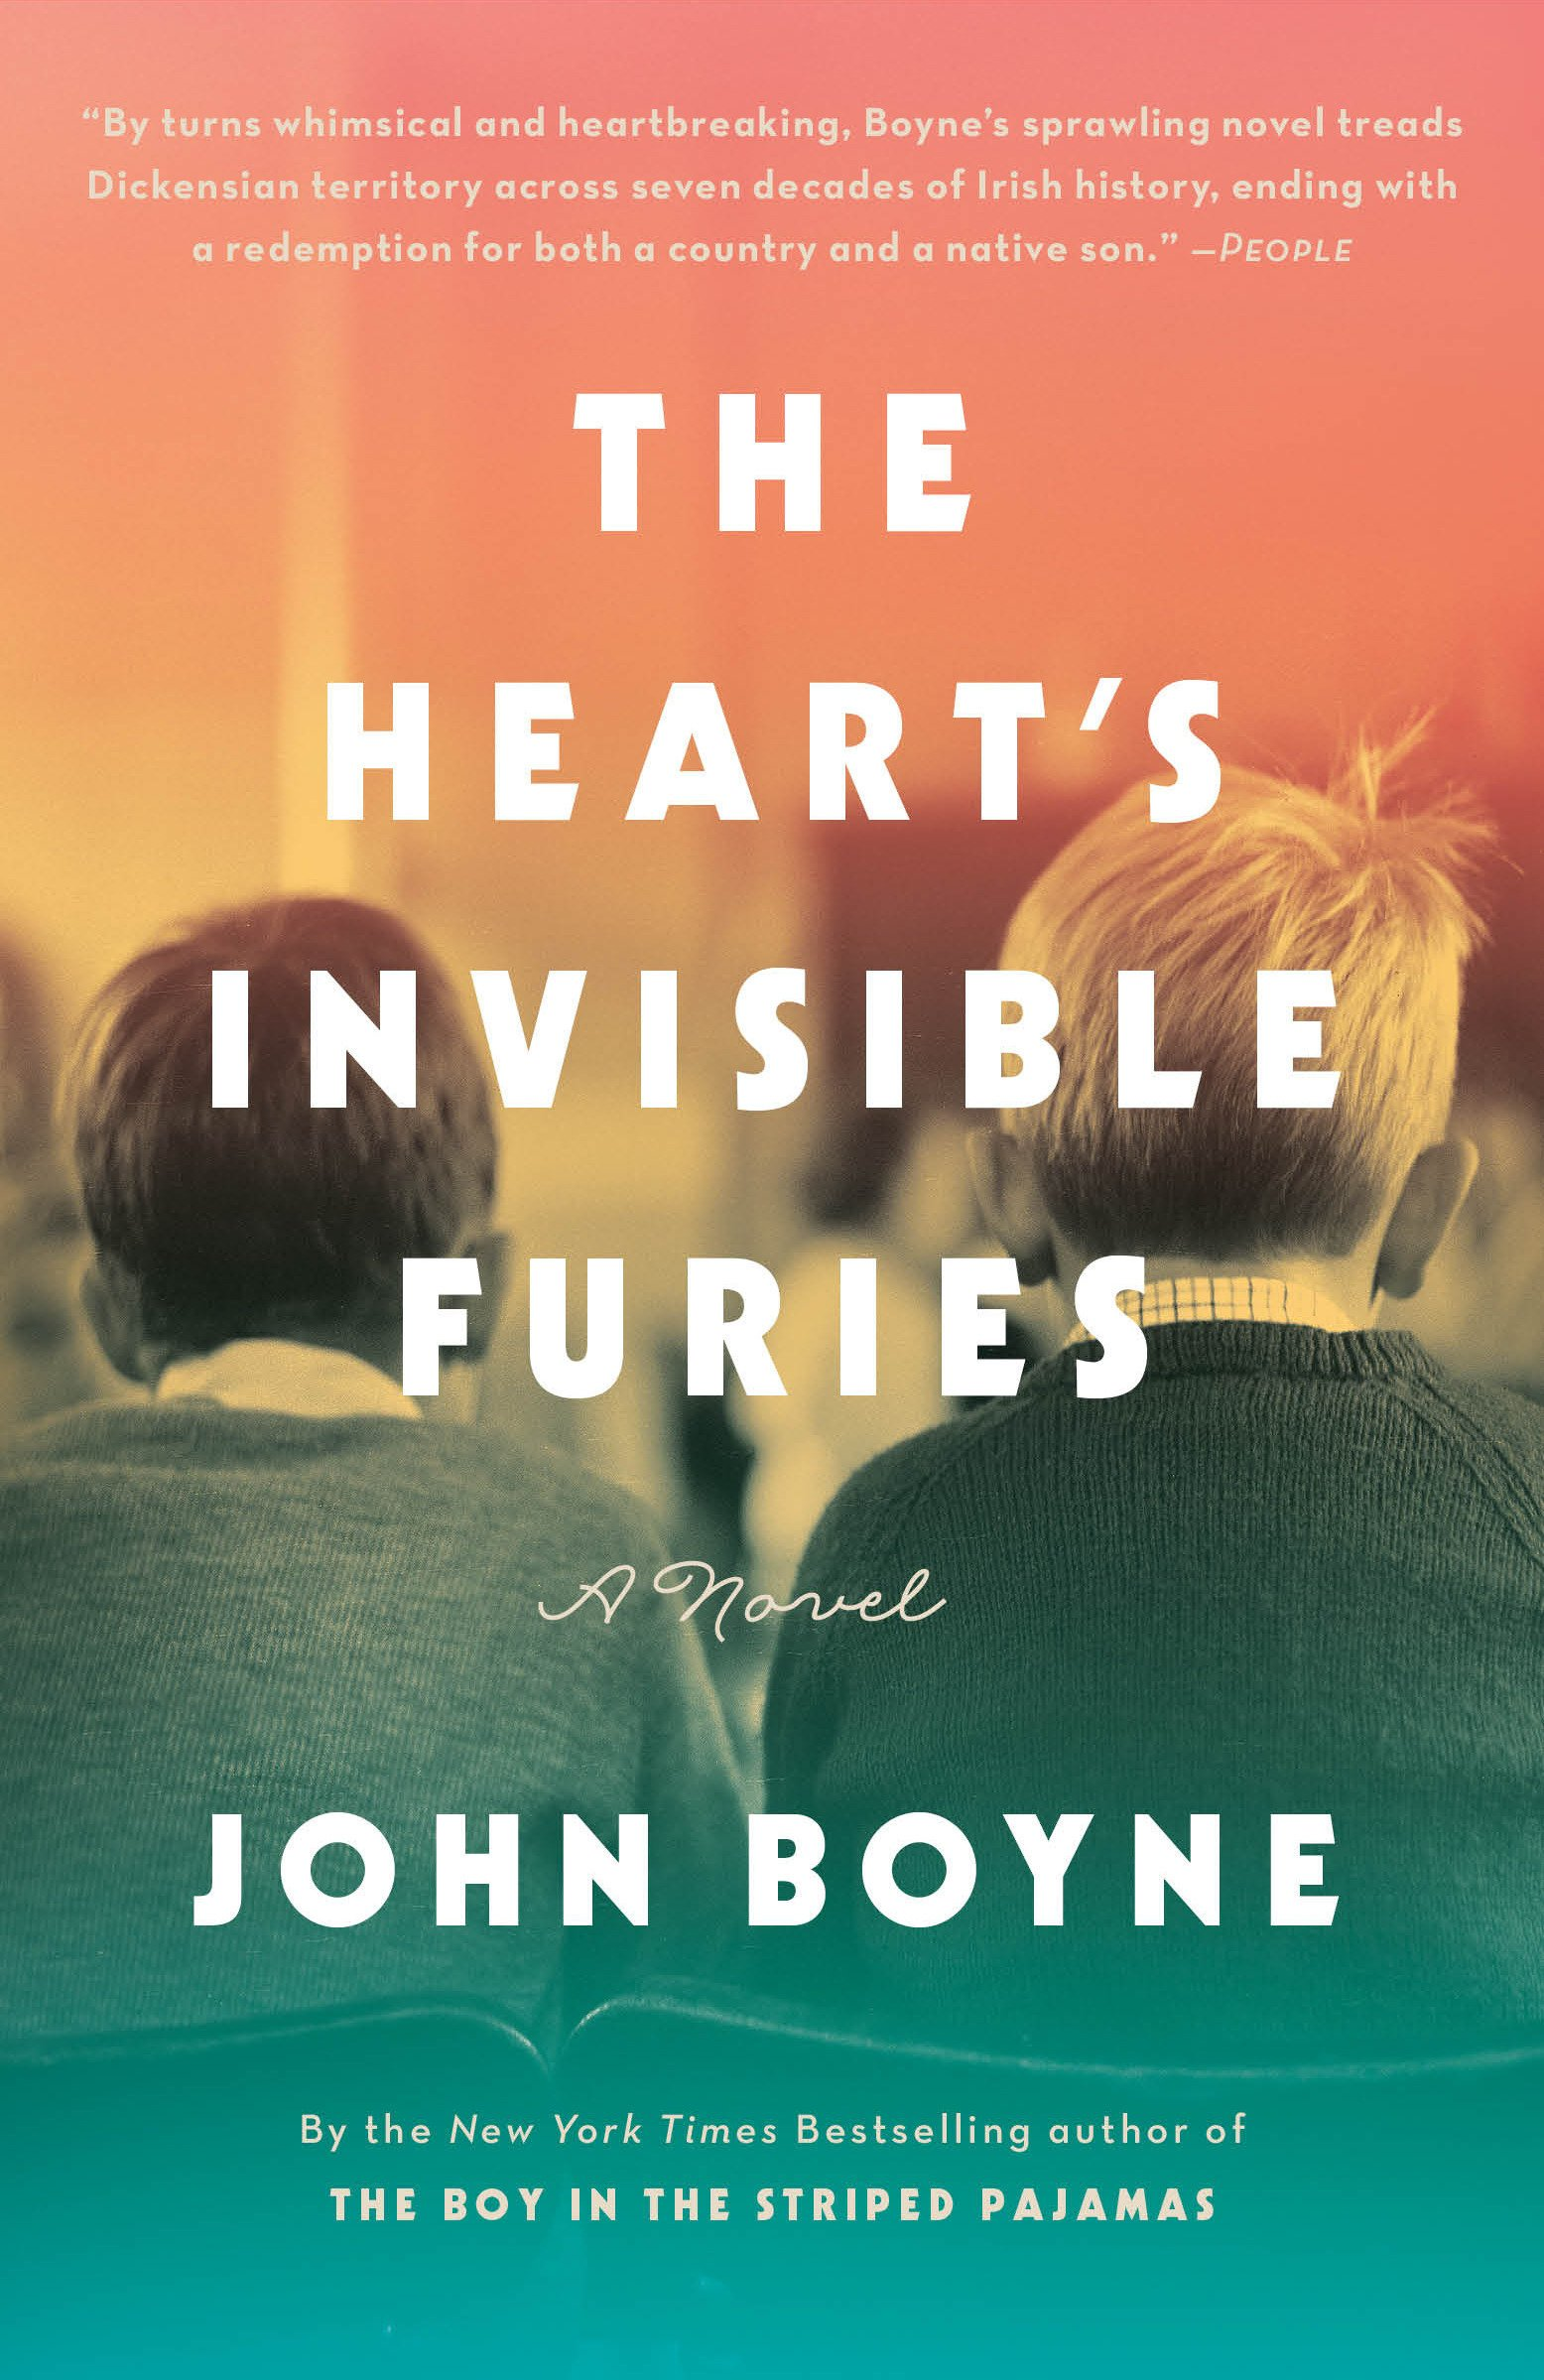 Book Club: The Heart's Invisible Furies